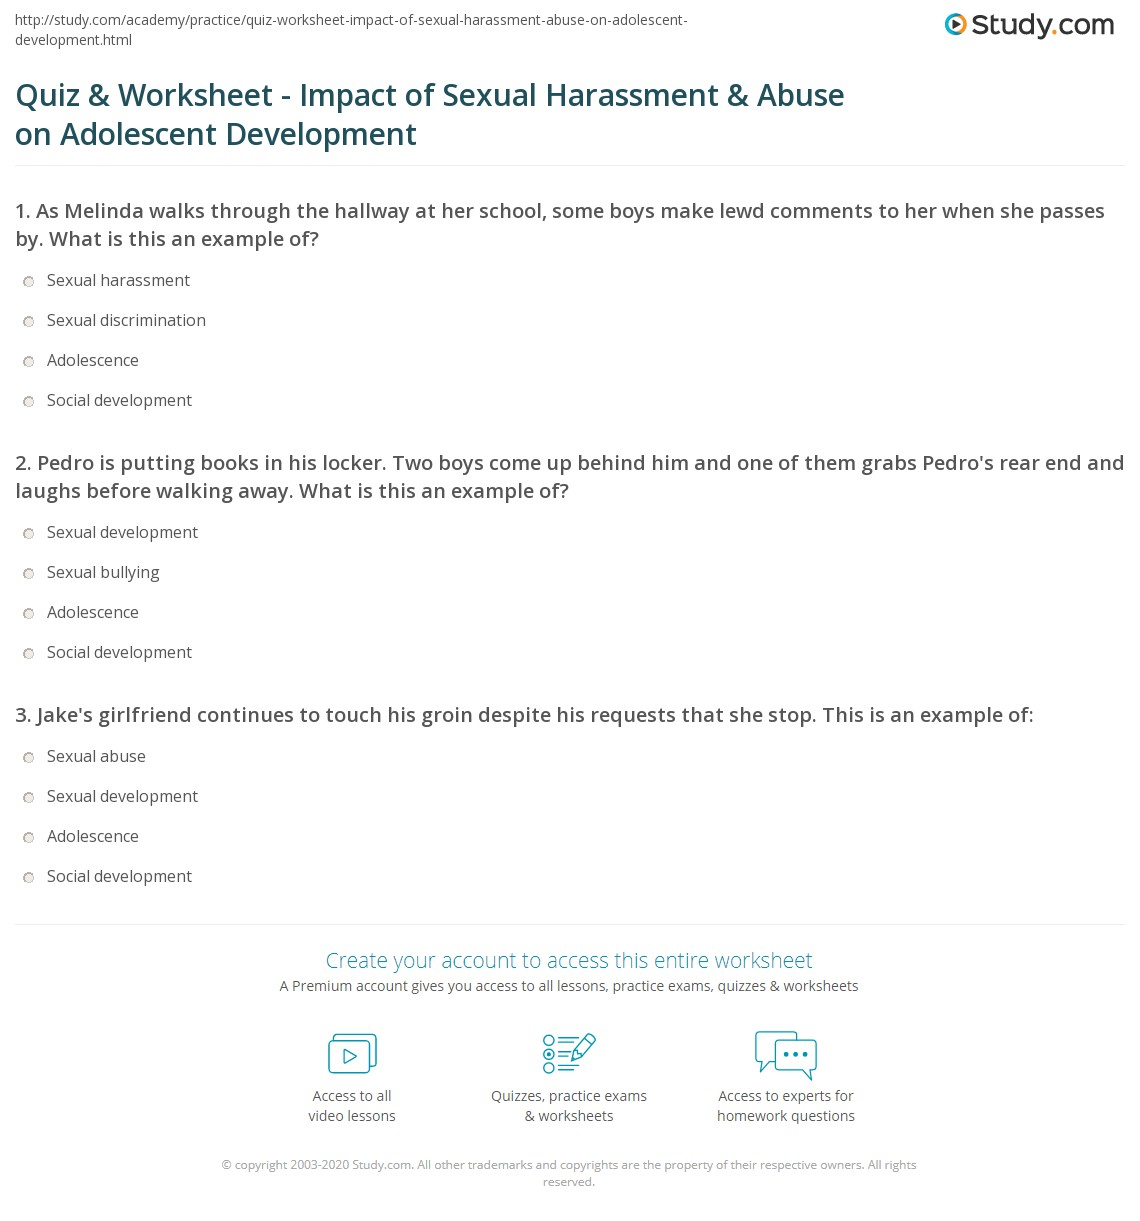 quiz worksheet impact of sexual harassment abuse on print influences of sexual harassment and abuse on adolescent development worksheet